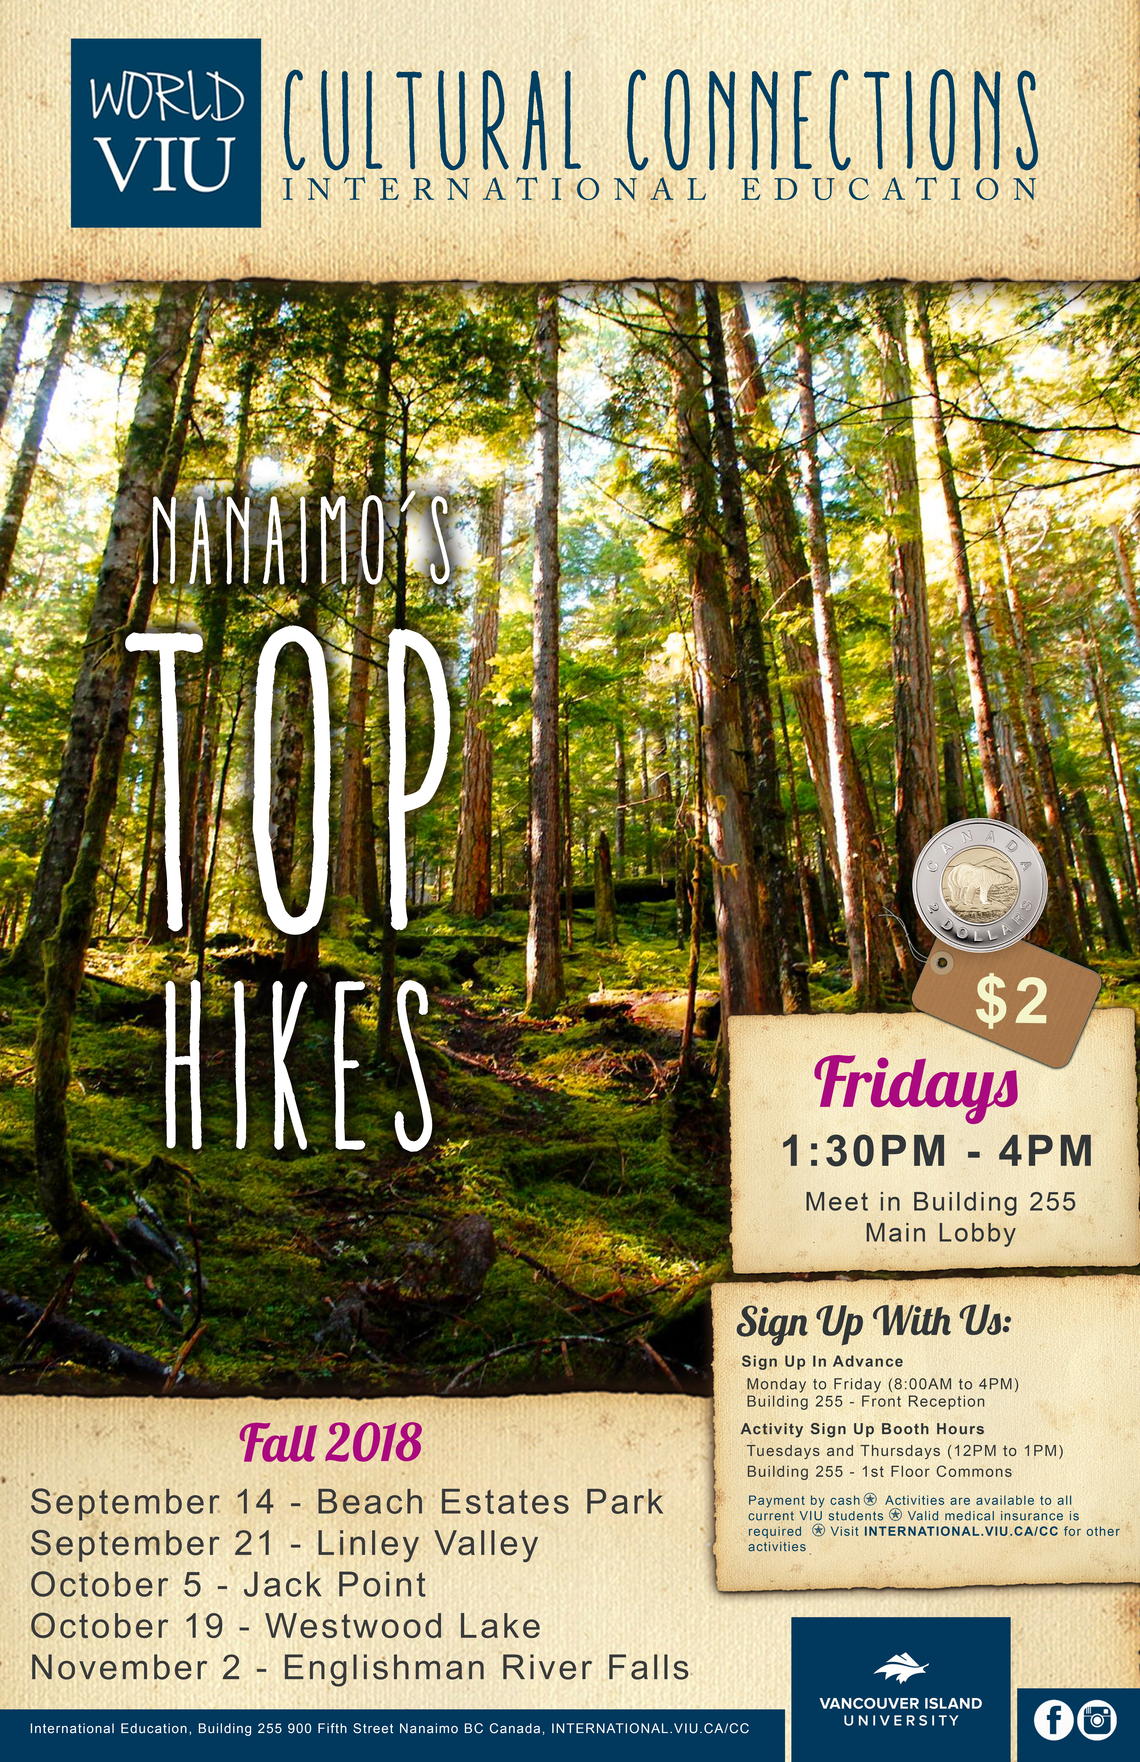 VIU Cultural Connections Top Hikes Poster Fall 2018 PNG